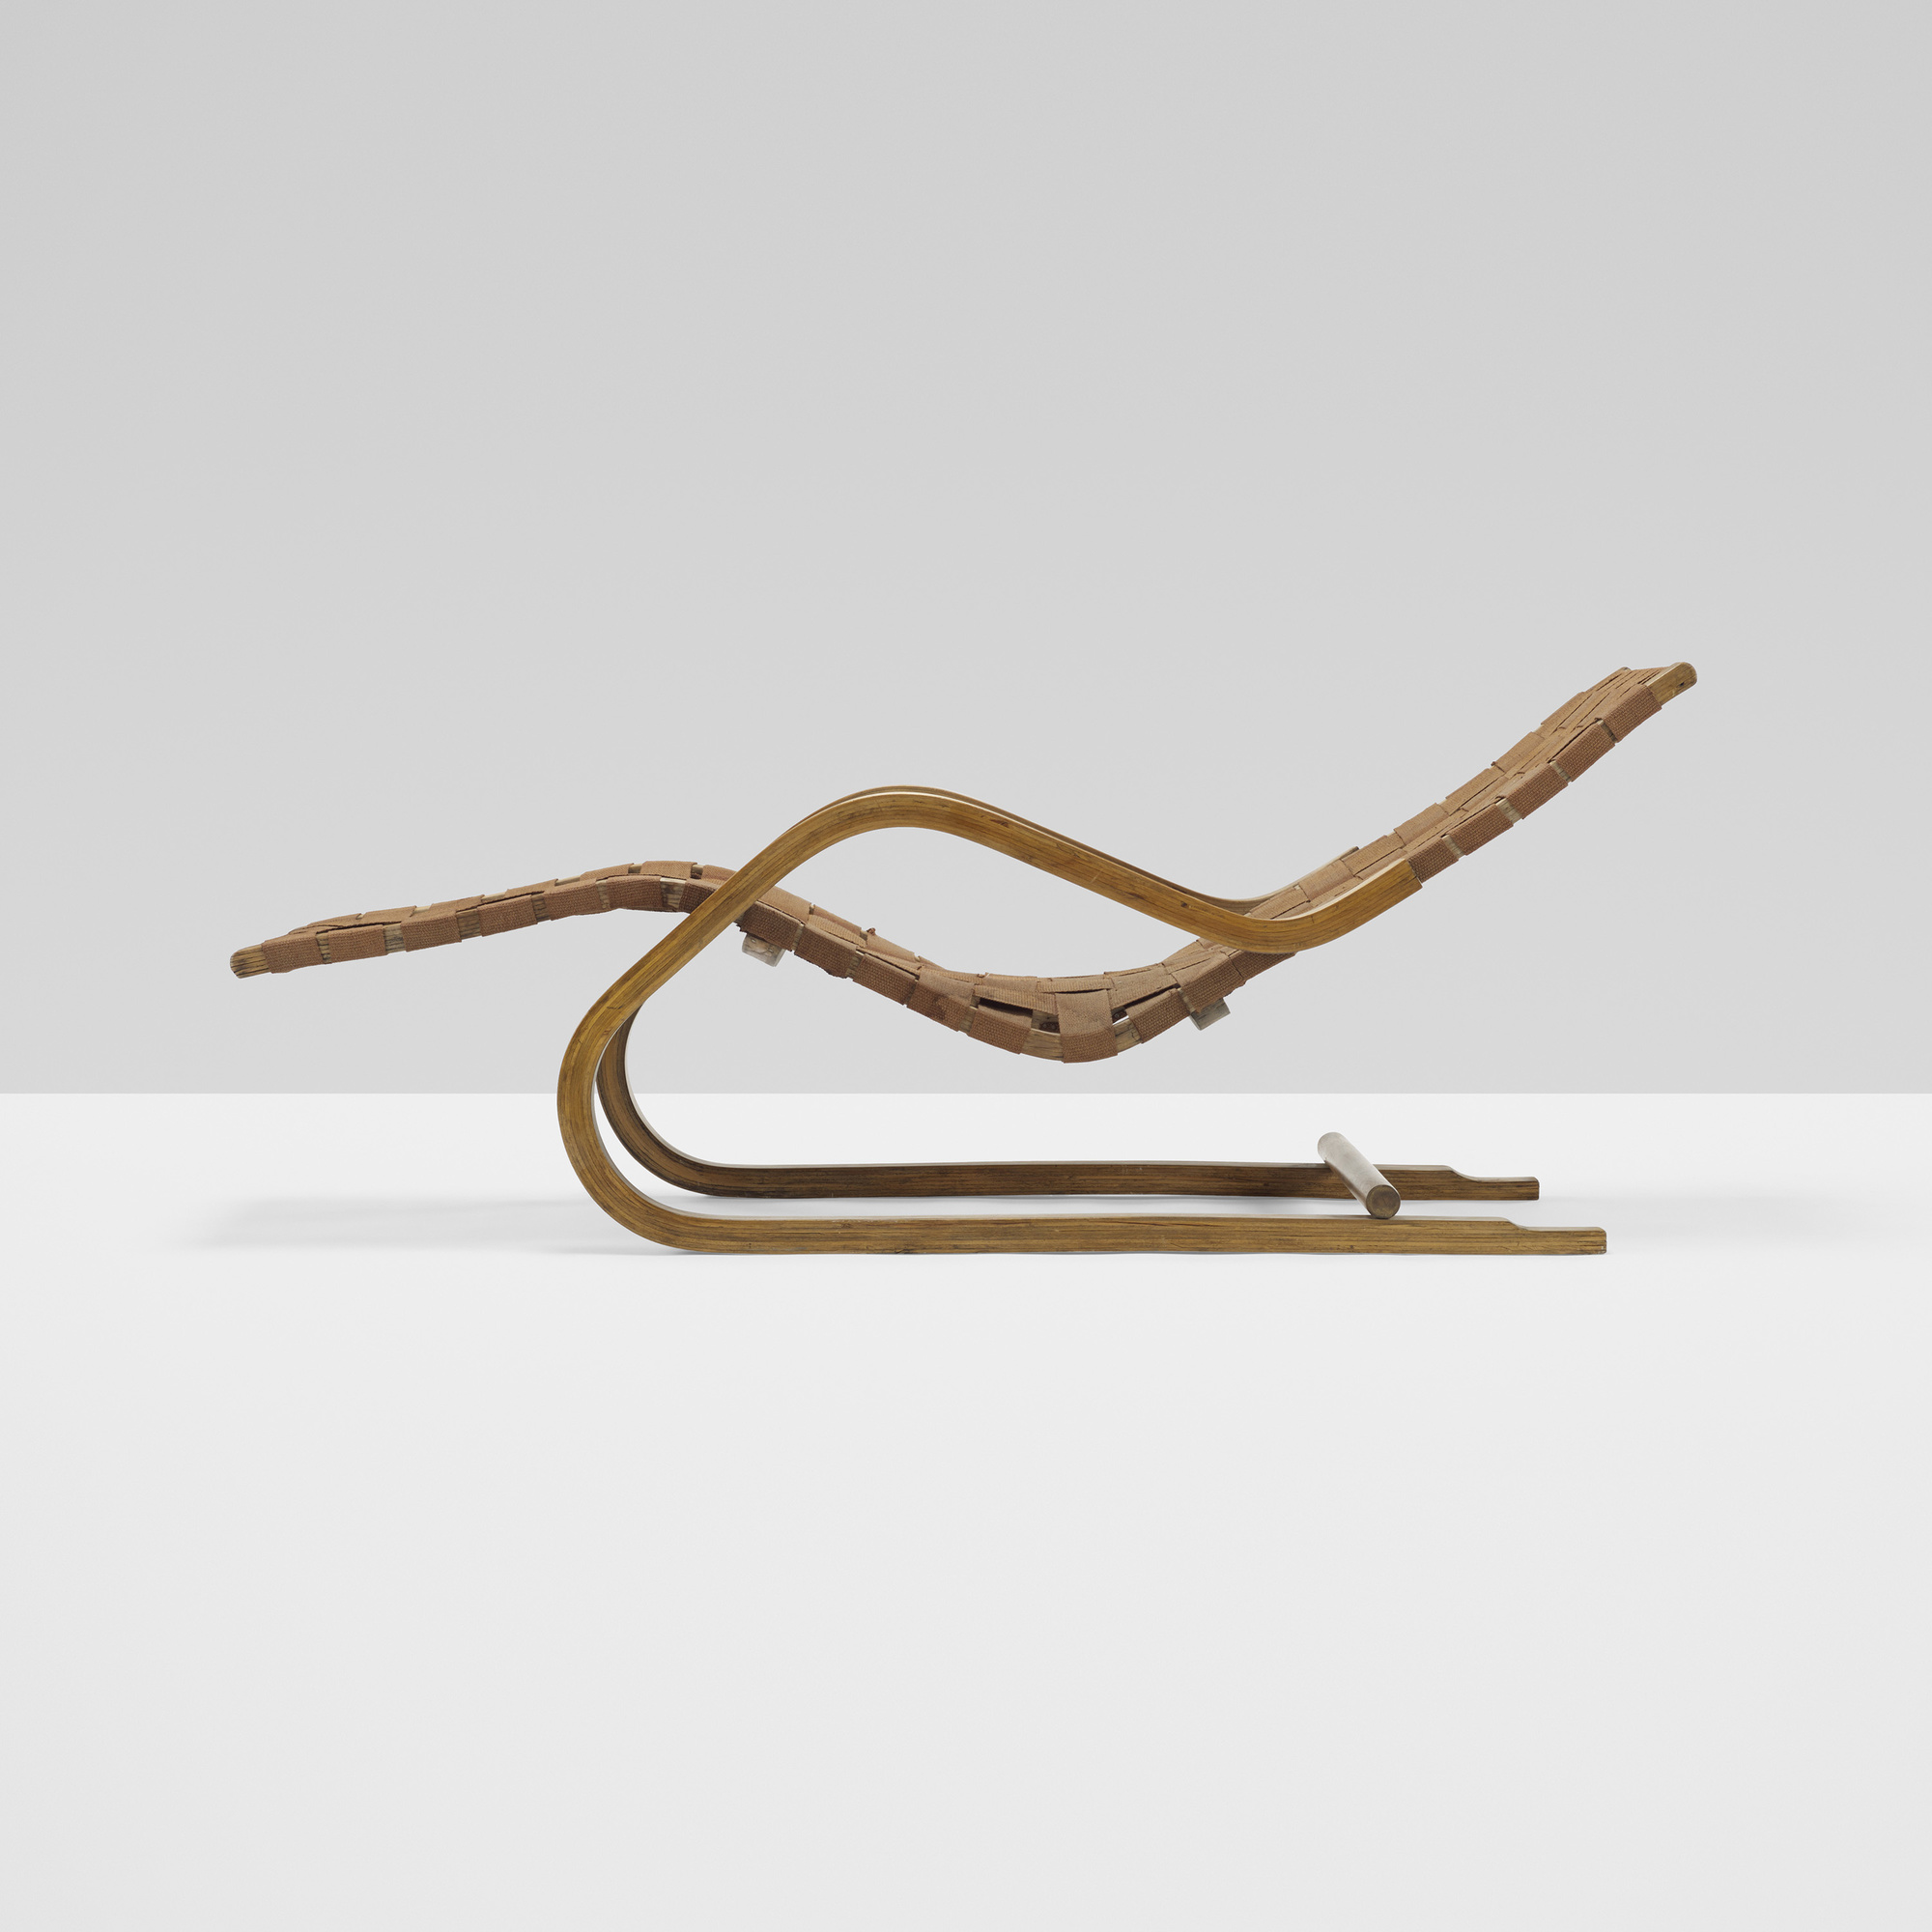 329 Alvar Aalto Cantilevered Chaise Model 39 1 Of 3